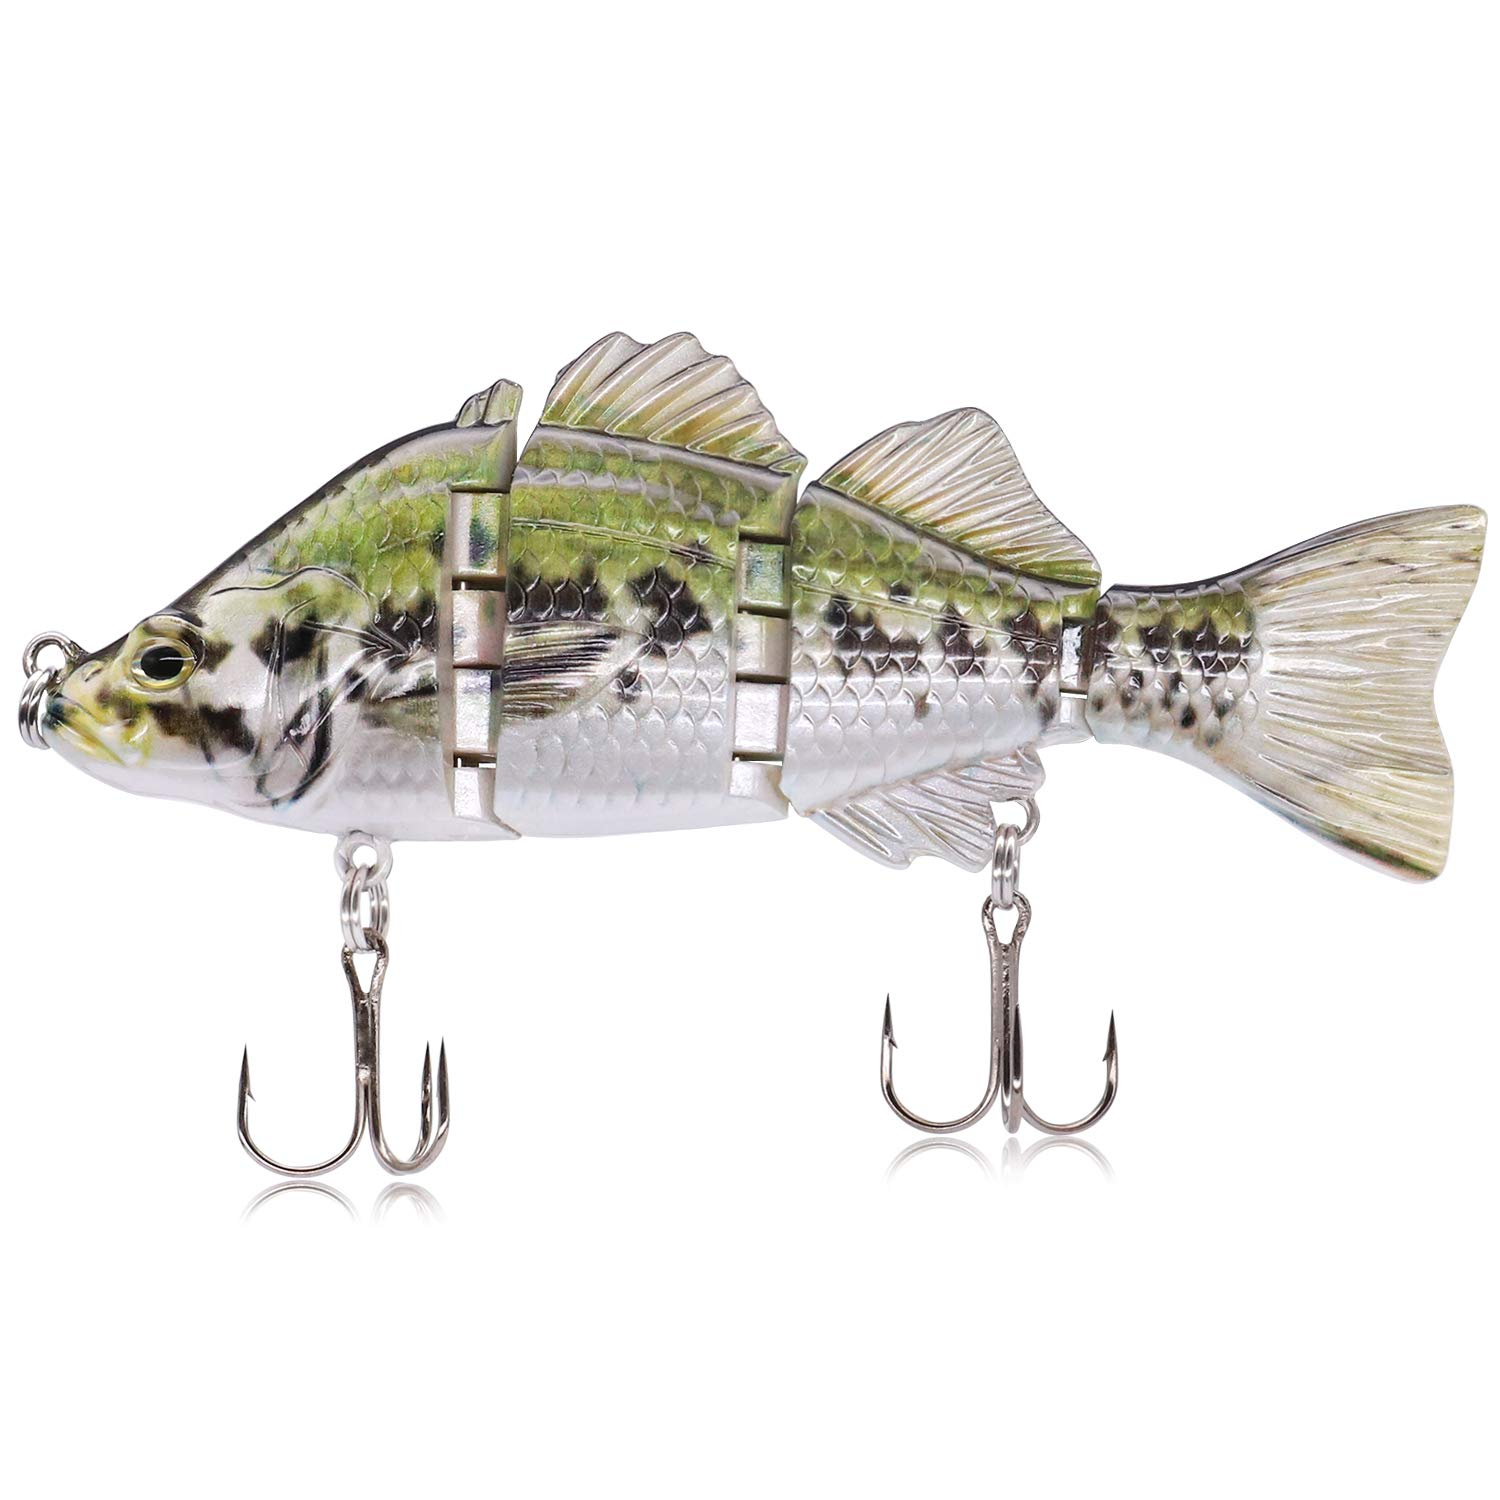 TRUSCEND Fishing Lures Swimbait Bass, 10cm 3.93'' Fishing Lures Crankbait Jointed Trout Swimbait Mustad Hooks (J4A02)